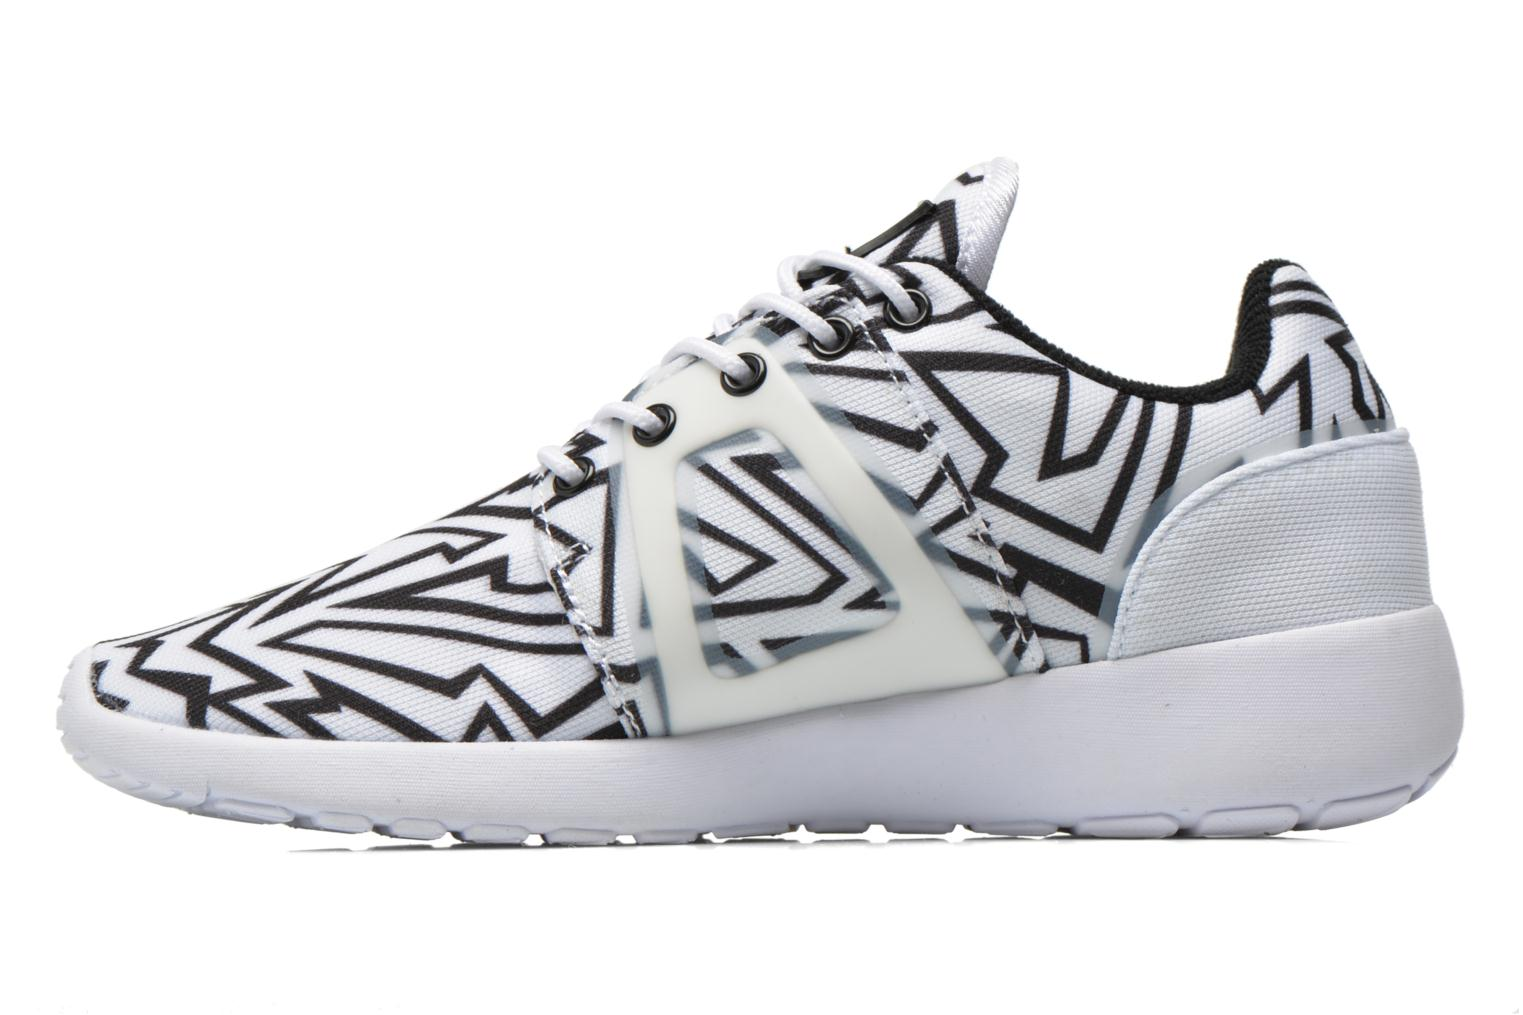 Super Tech White/Black arrows